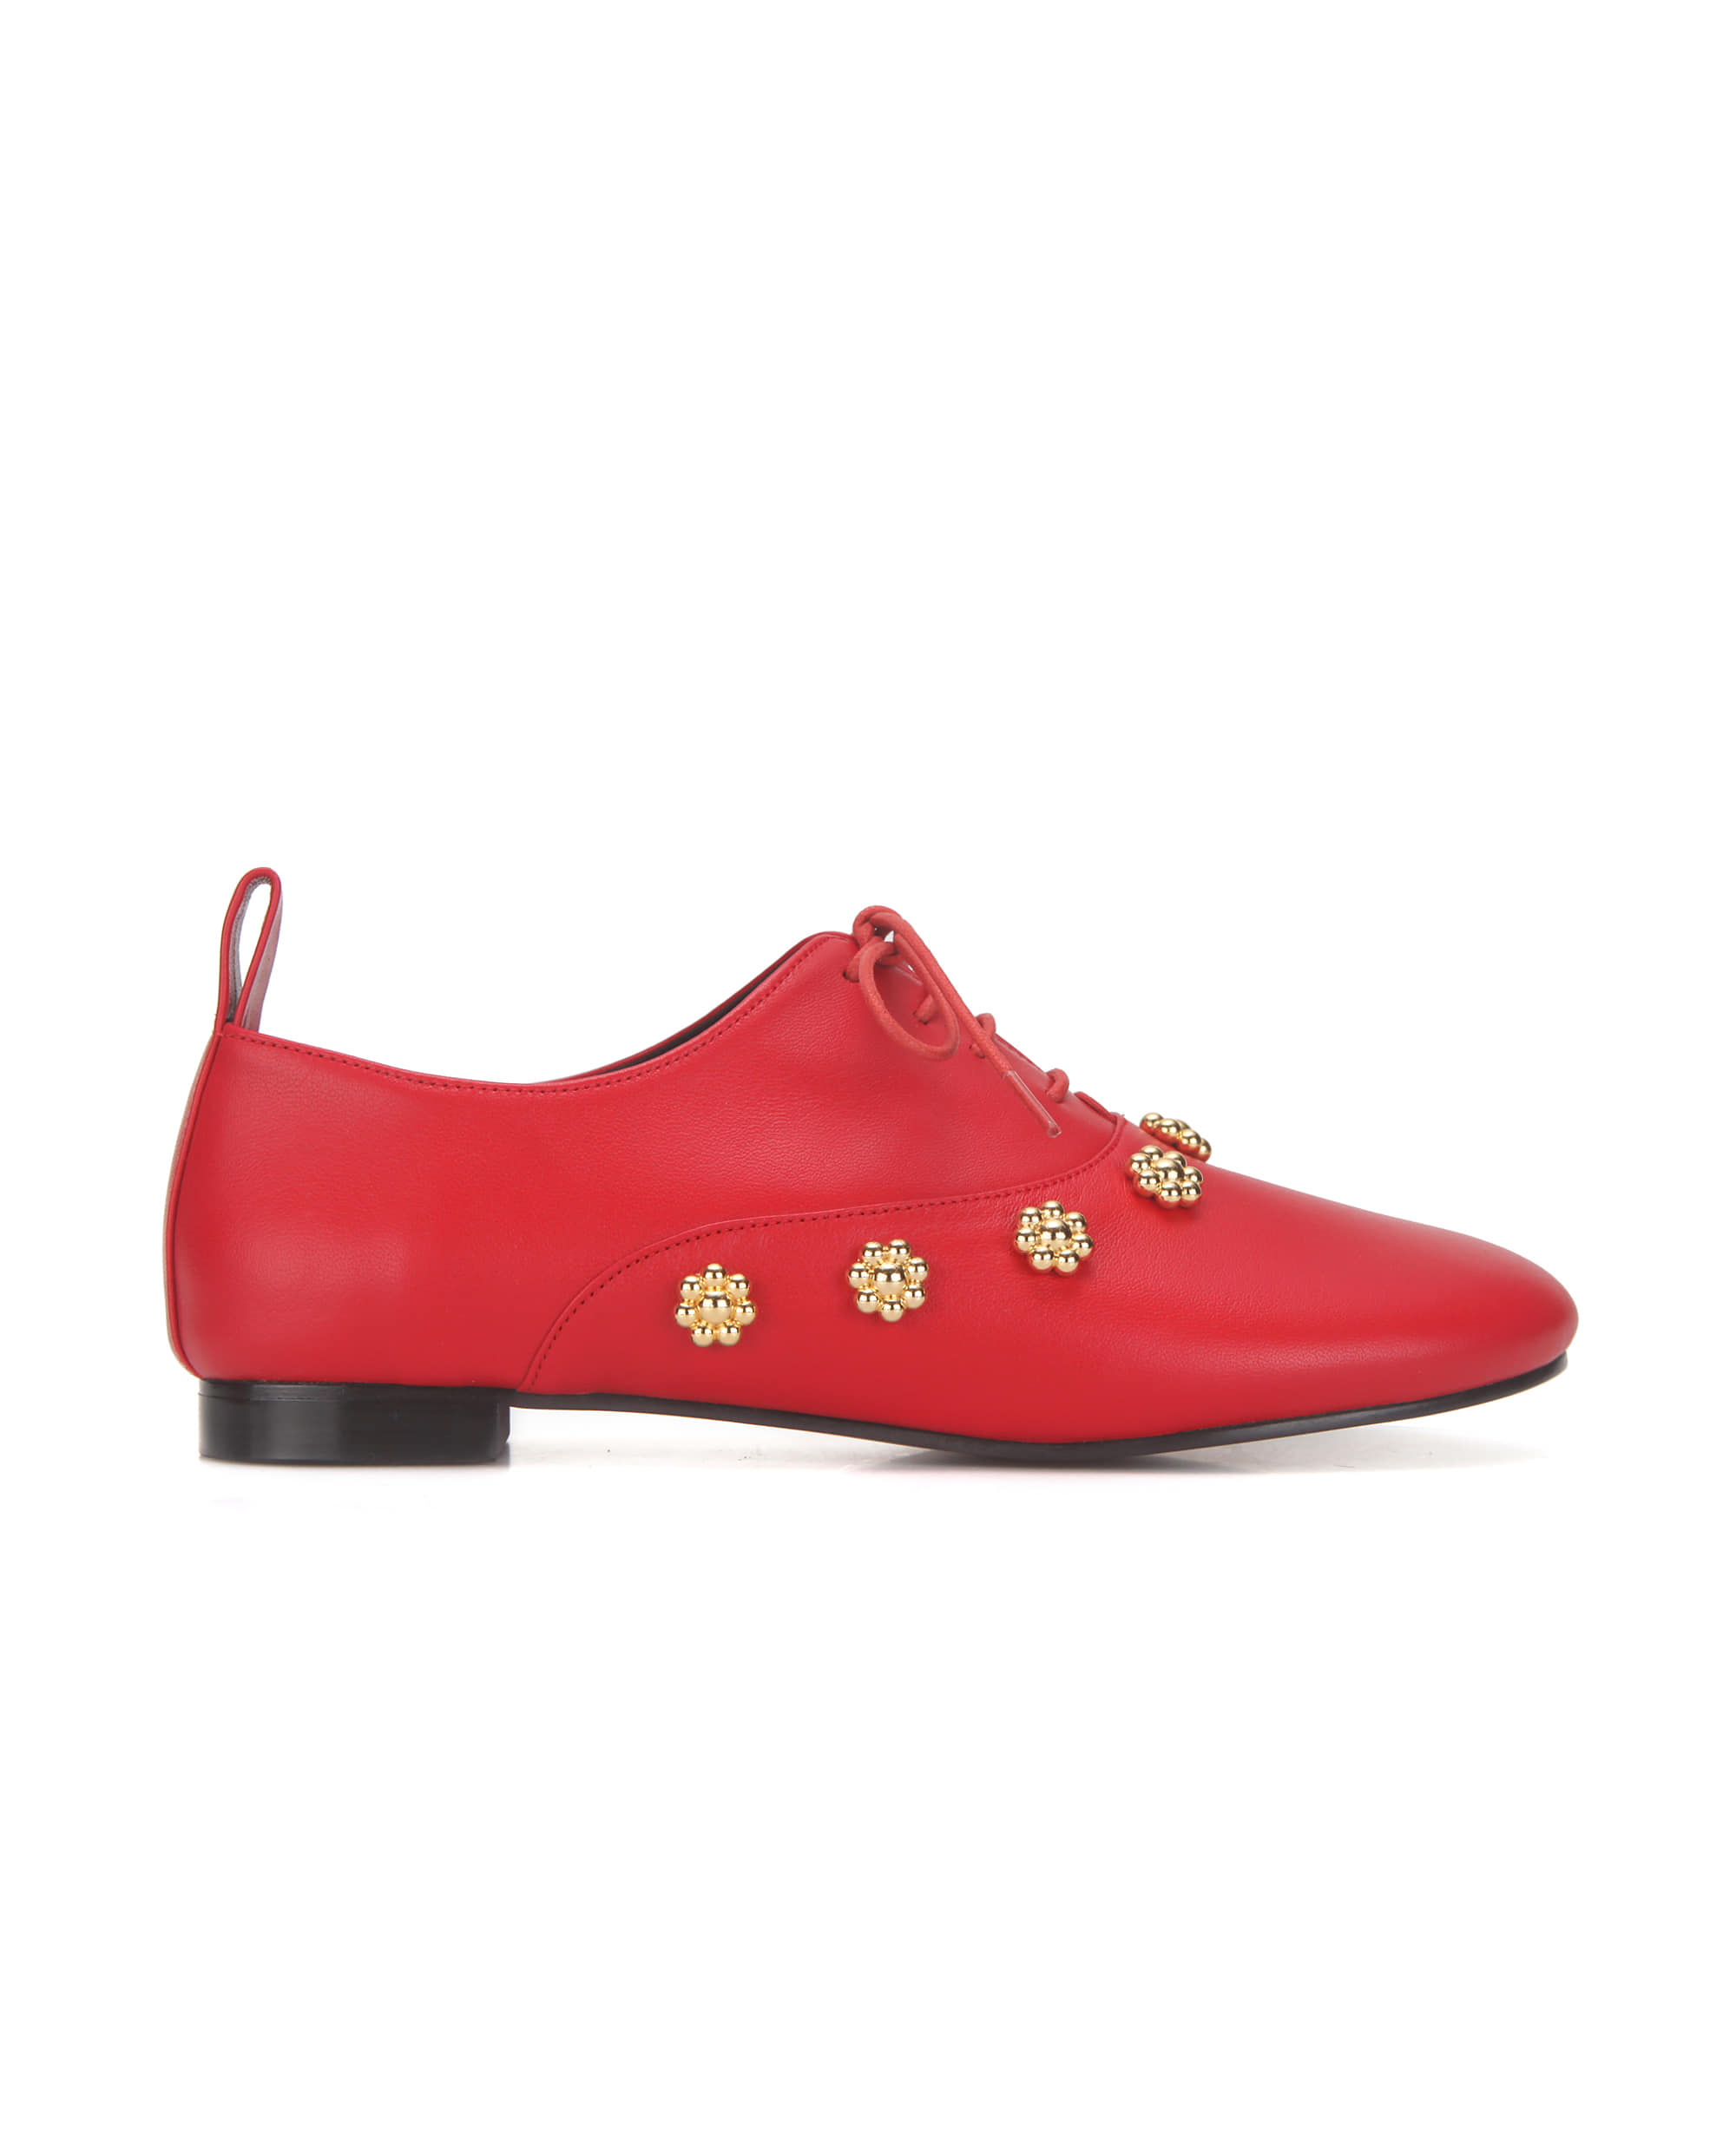 Pebble toe flower oxfords | Red